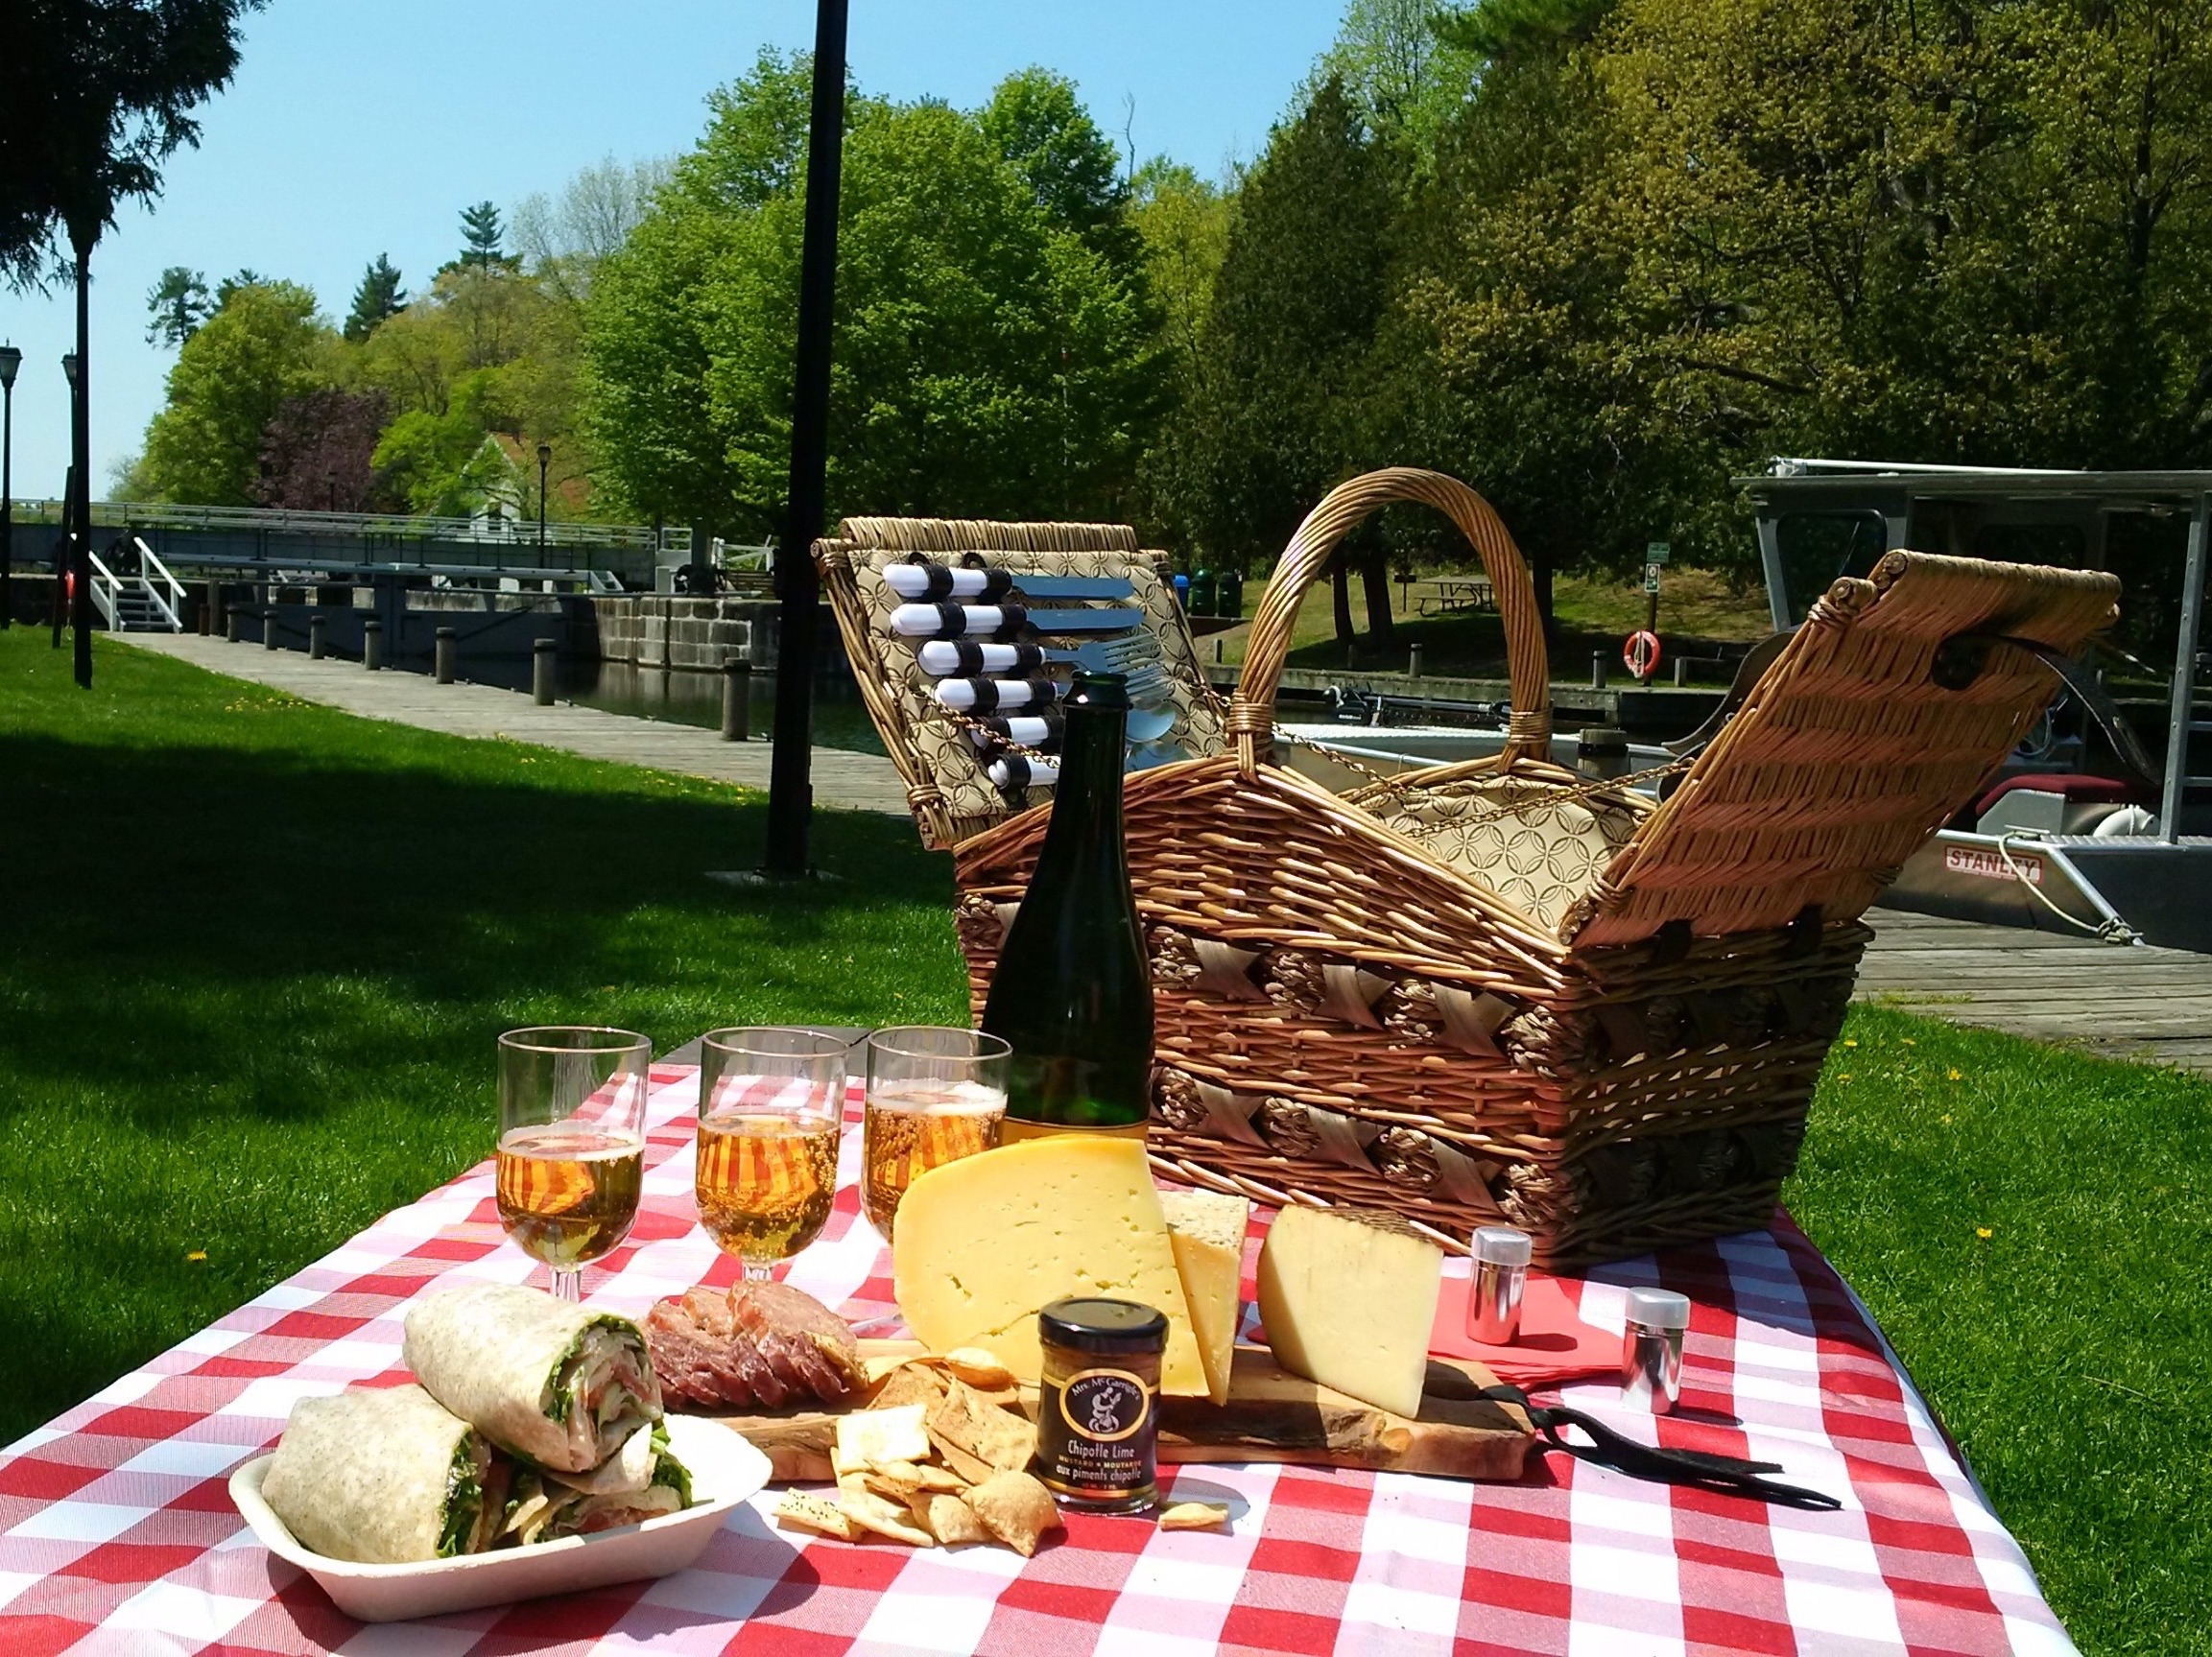 Image of a picnic basket on a picnic blanket with an array of food.